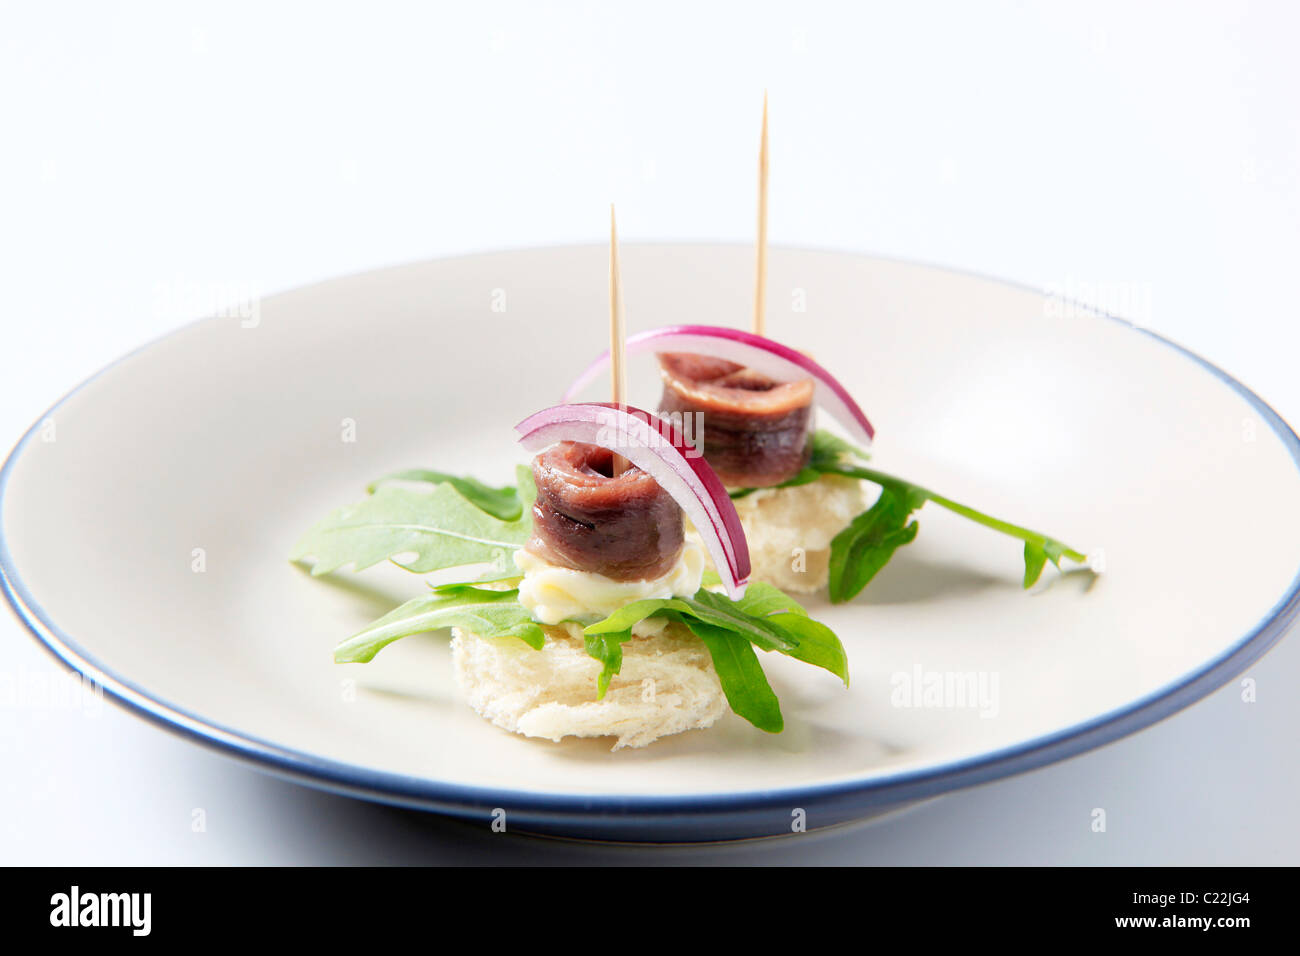 Anchovy canapes garnished with leaves of arugula Stock Photo